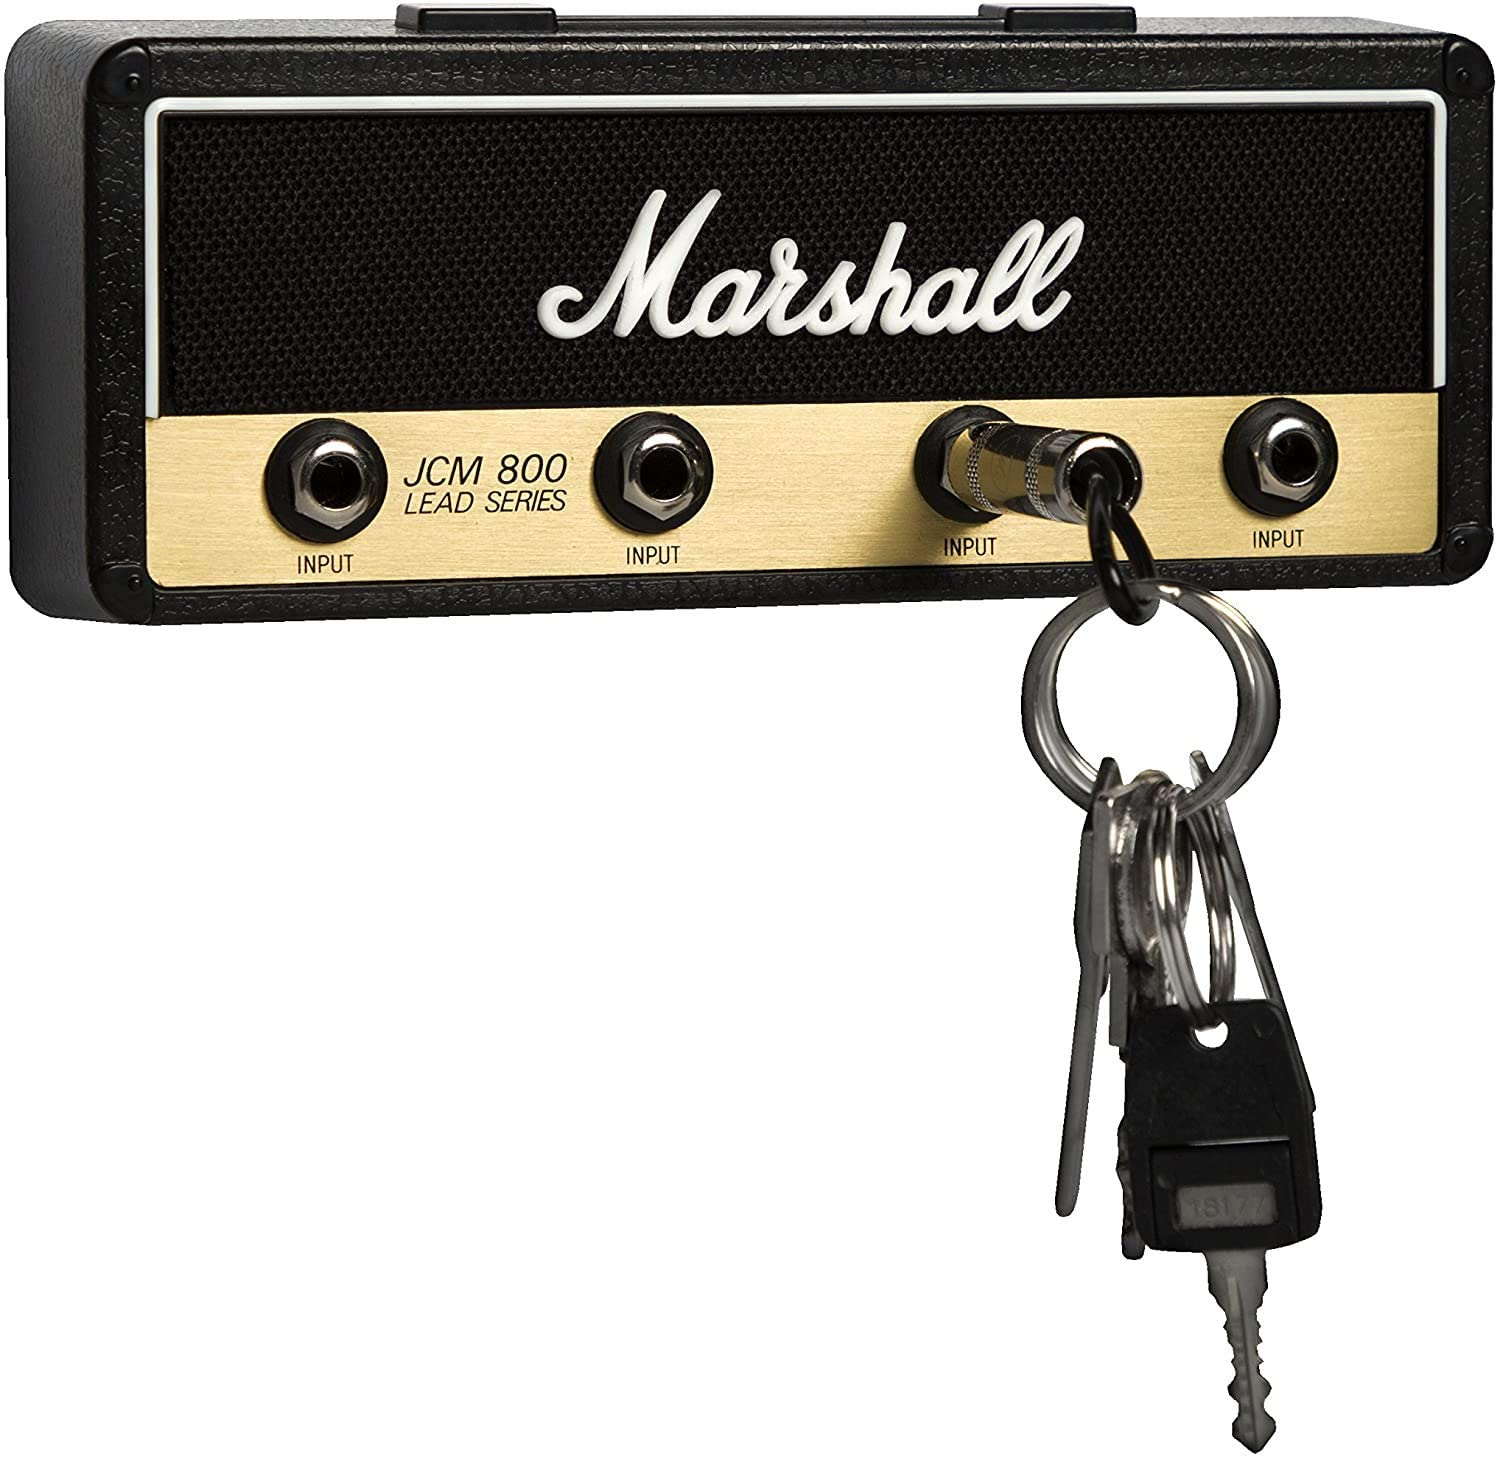 gifts-for-music-lovers-amp-key-holder